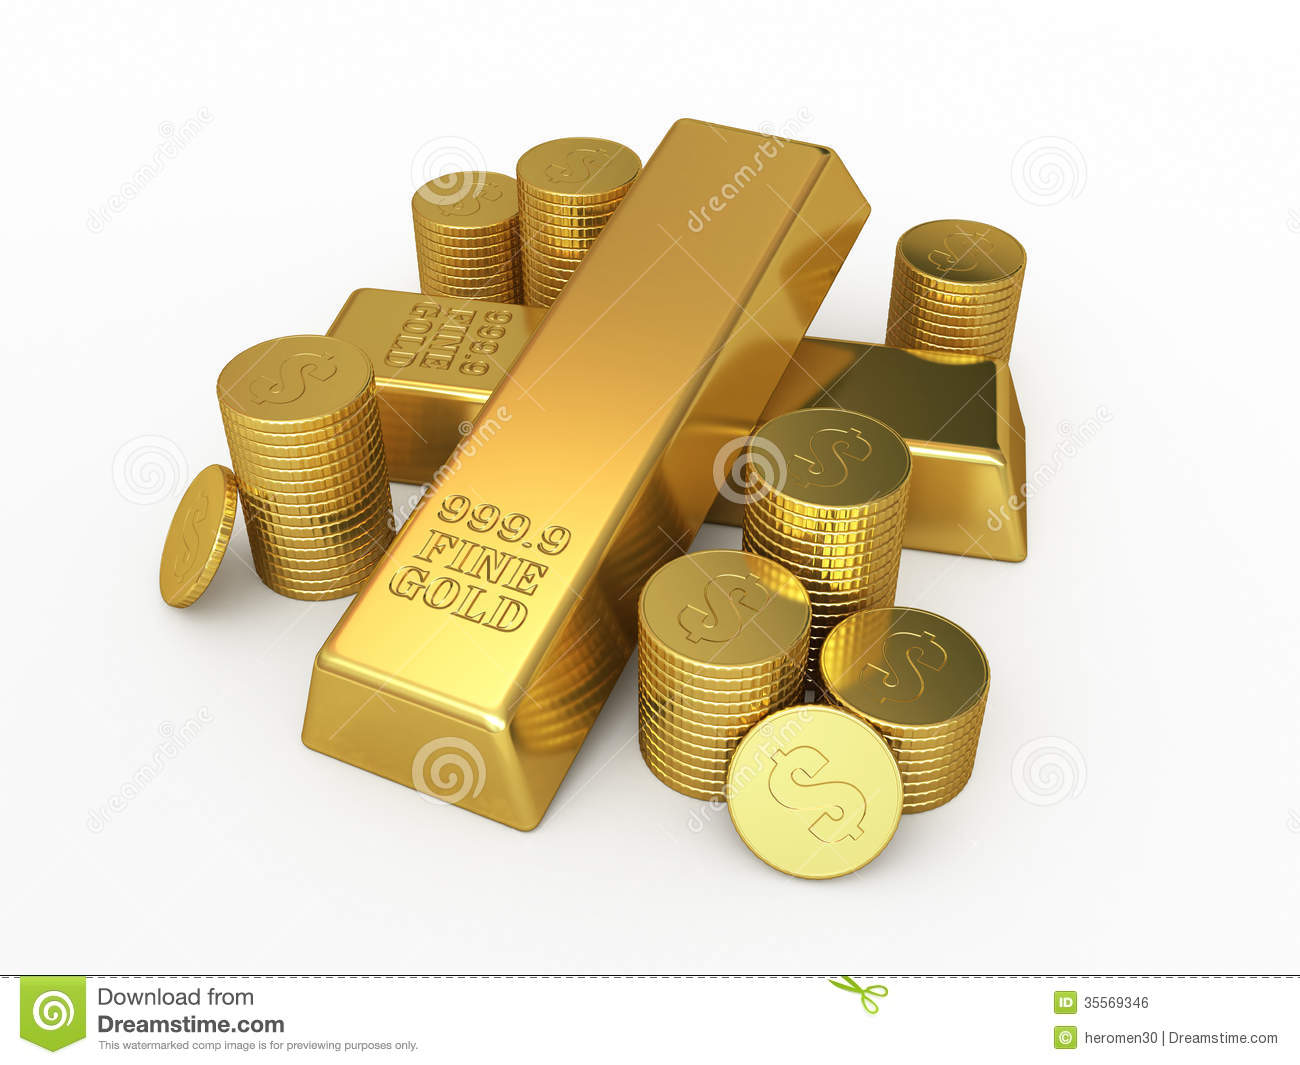 gold bars and coins royalty free stock image image 35569346. Black Bedroom Furniture Sets. Home Design Ideas